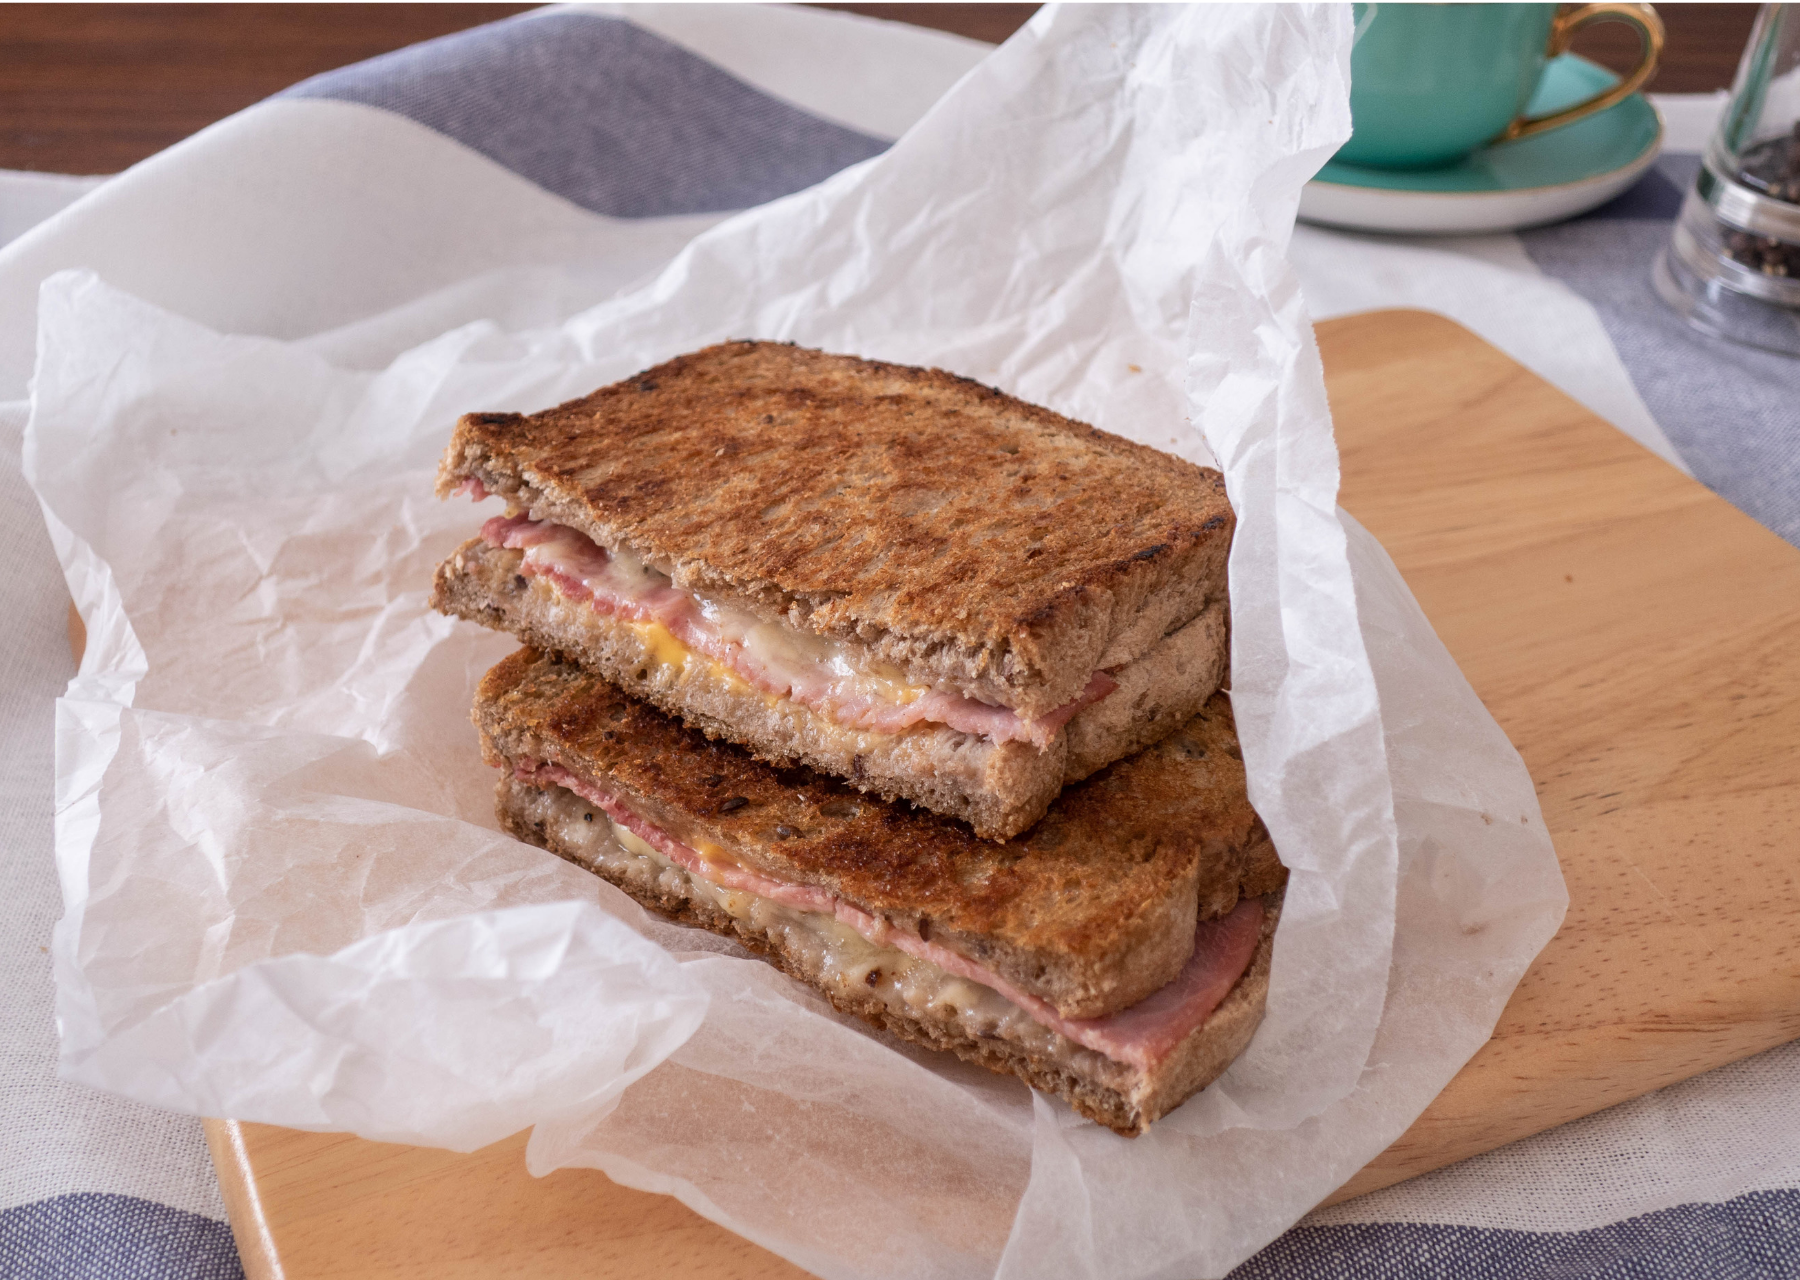 Halved grilled ham and cheese sandwich on a piece of baking paper